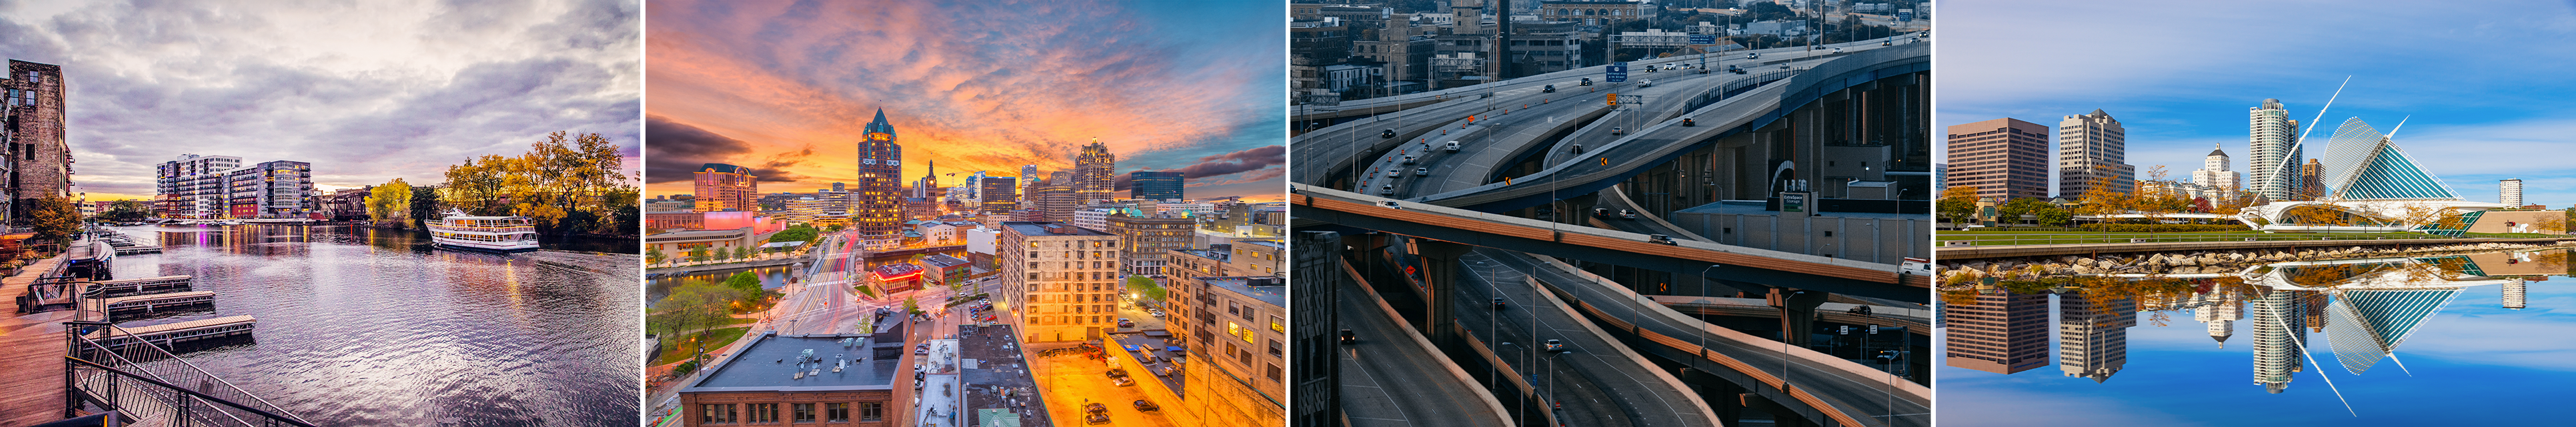 A collage of pictures of Milwaukee including the Art Museum and the city skyline at dusk